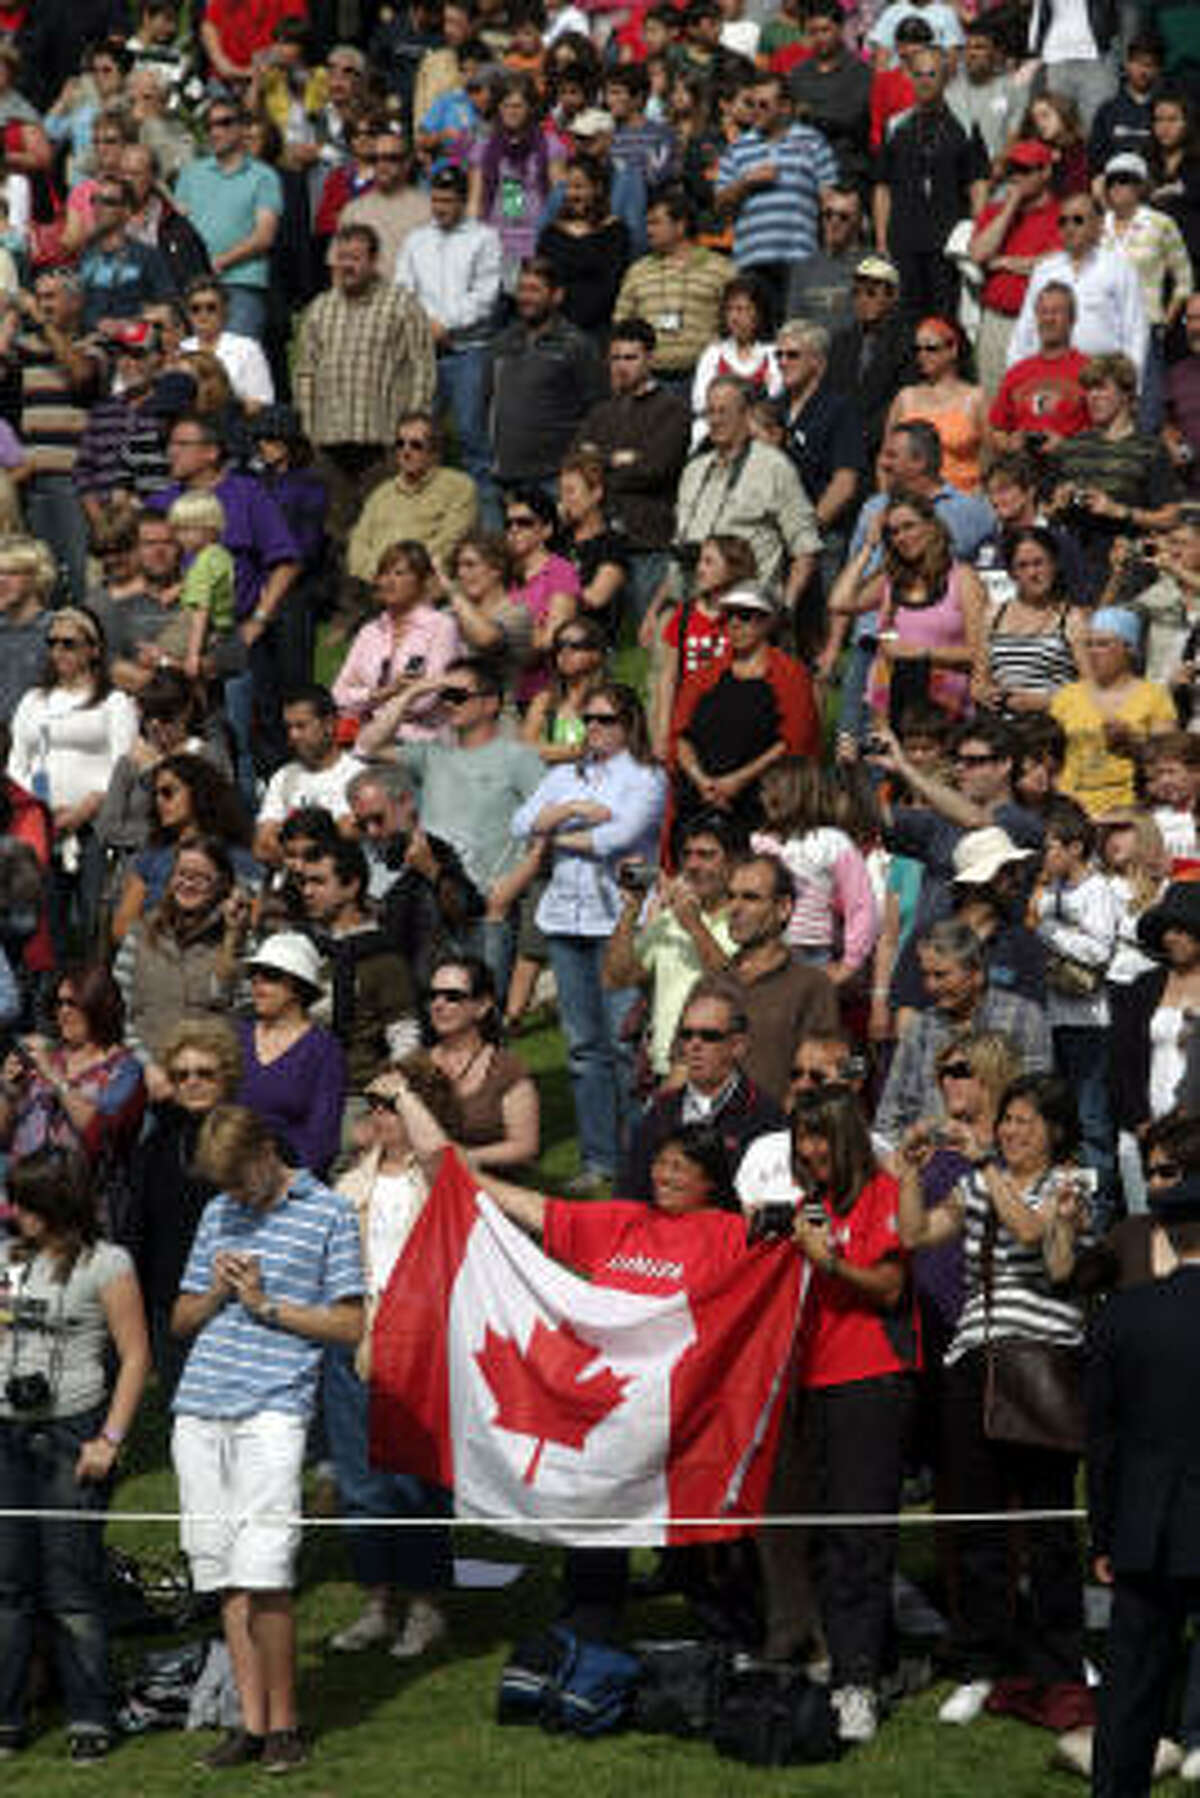 The Canadian flag was on display among the crowd of spectators.